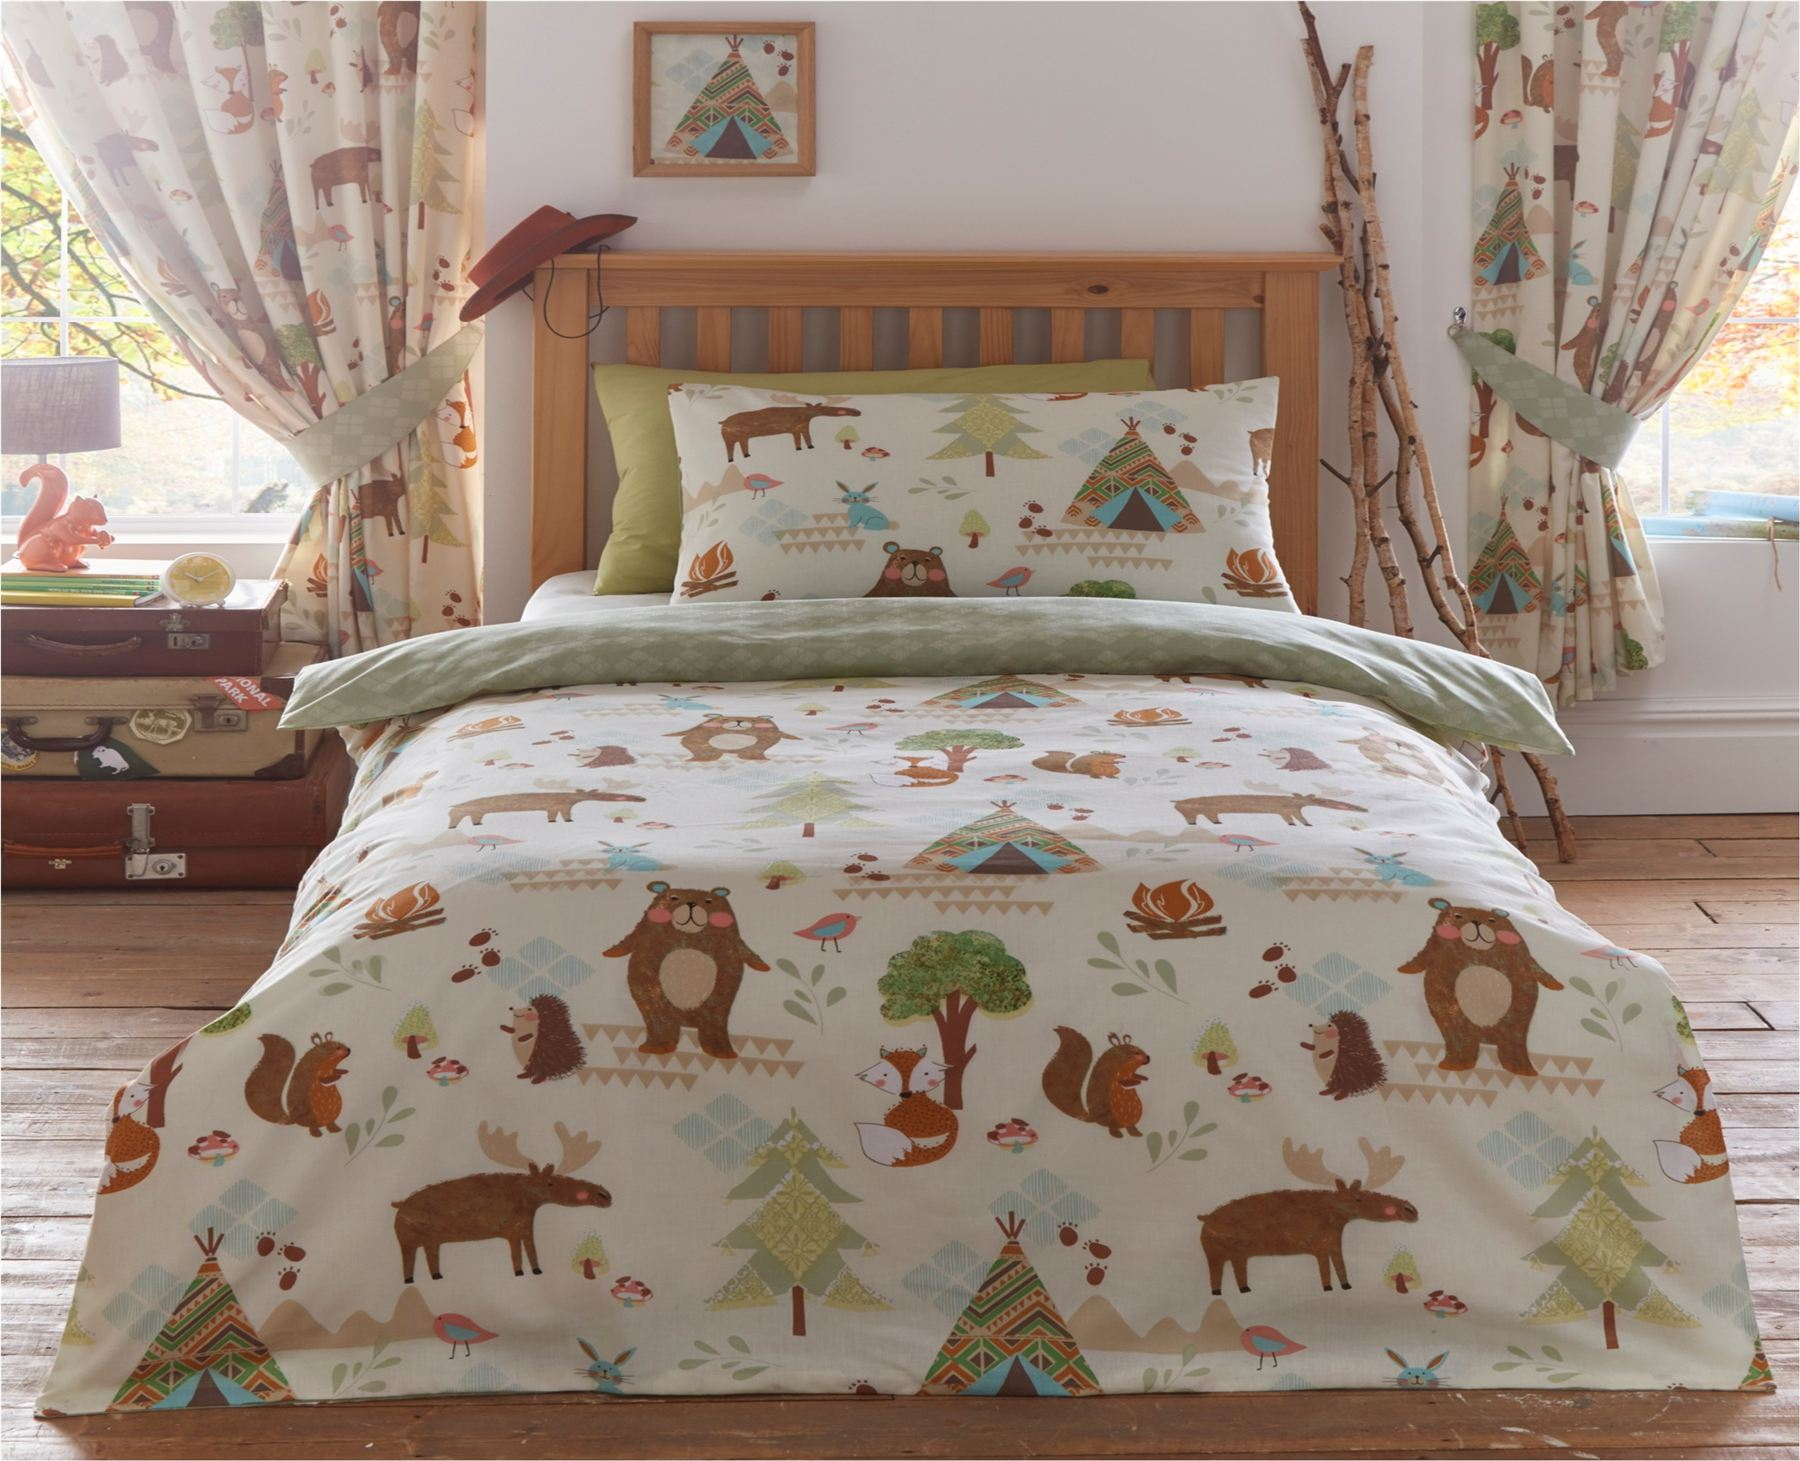 Childrens Quilt Duvet Cover Pillowcase Bedding Sets Or Matching Kids Curtains Ebay